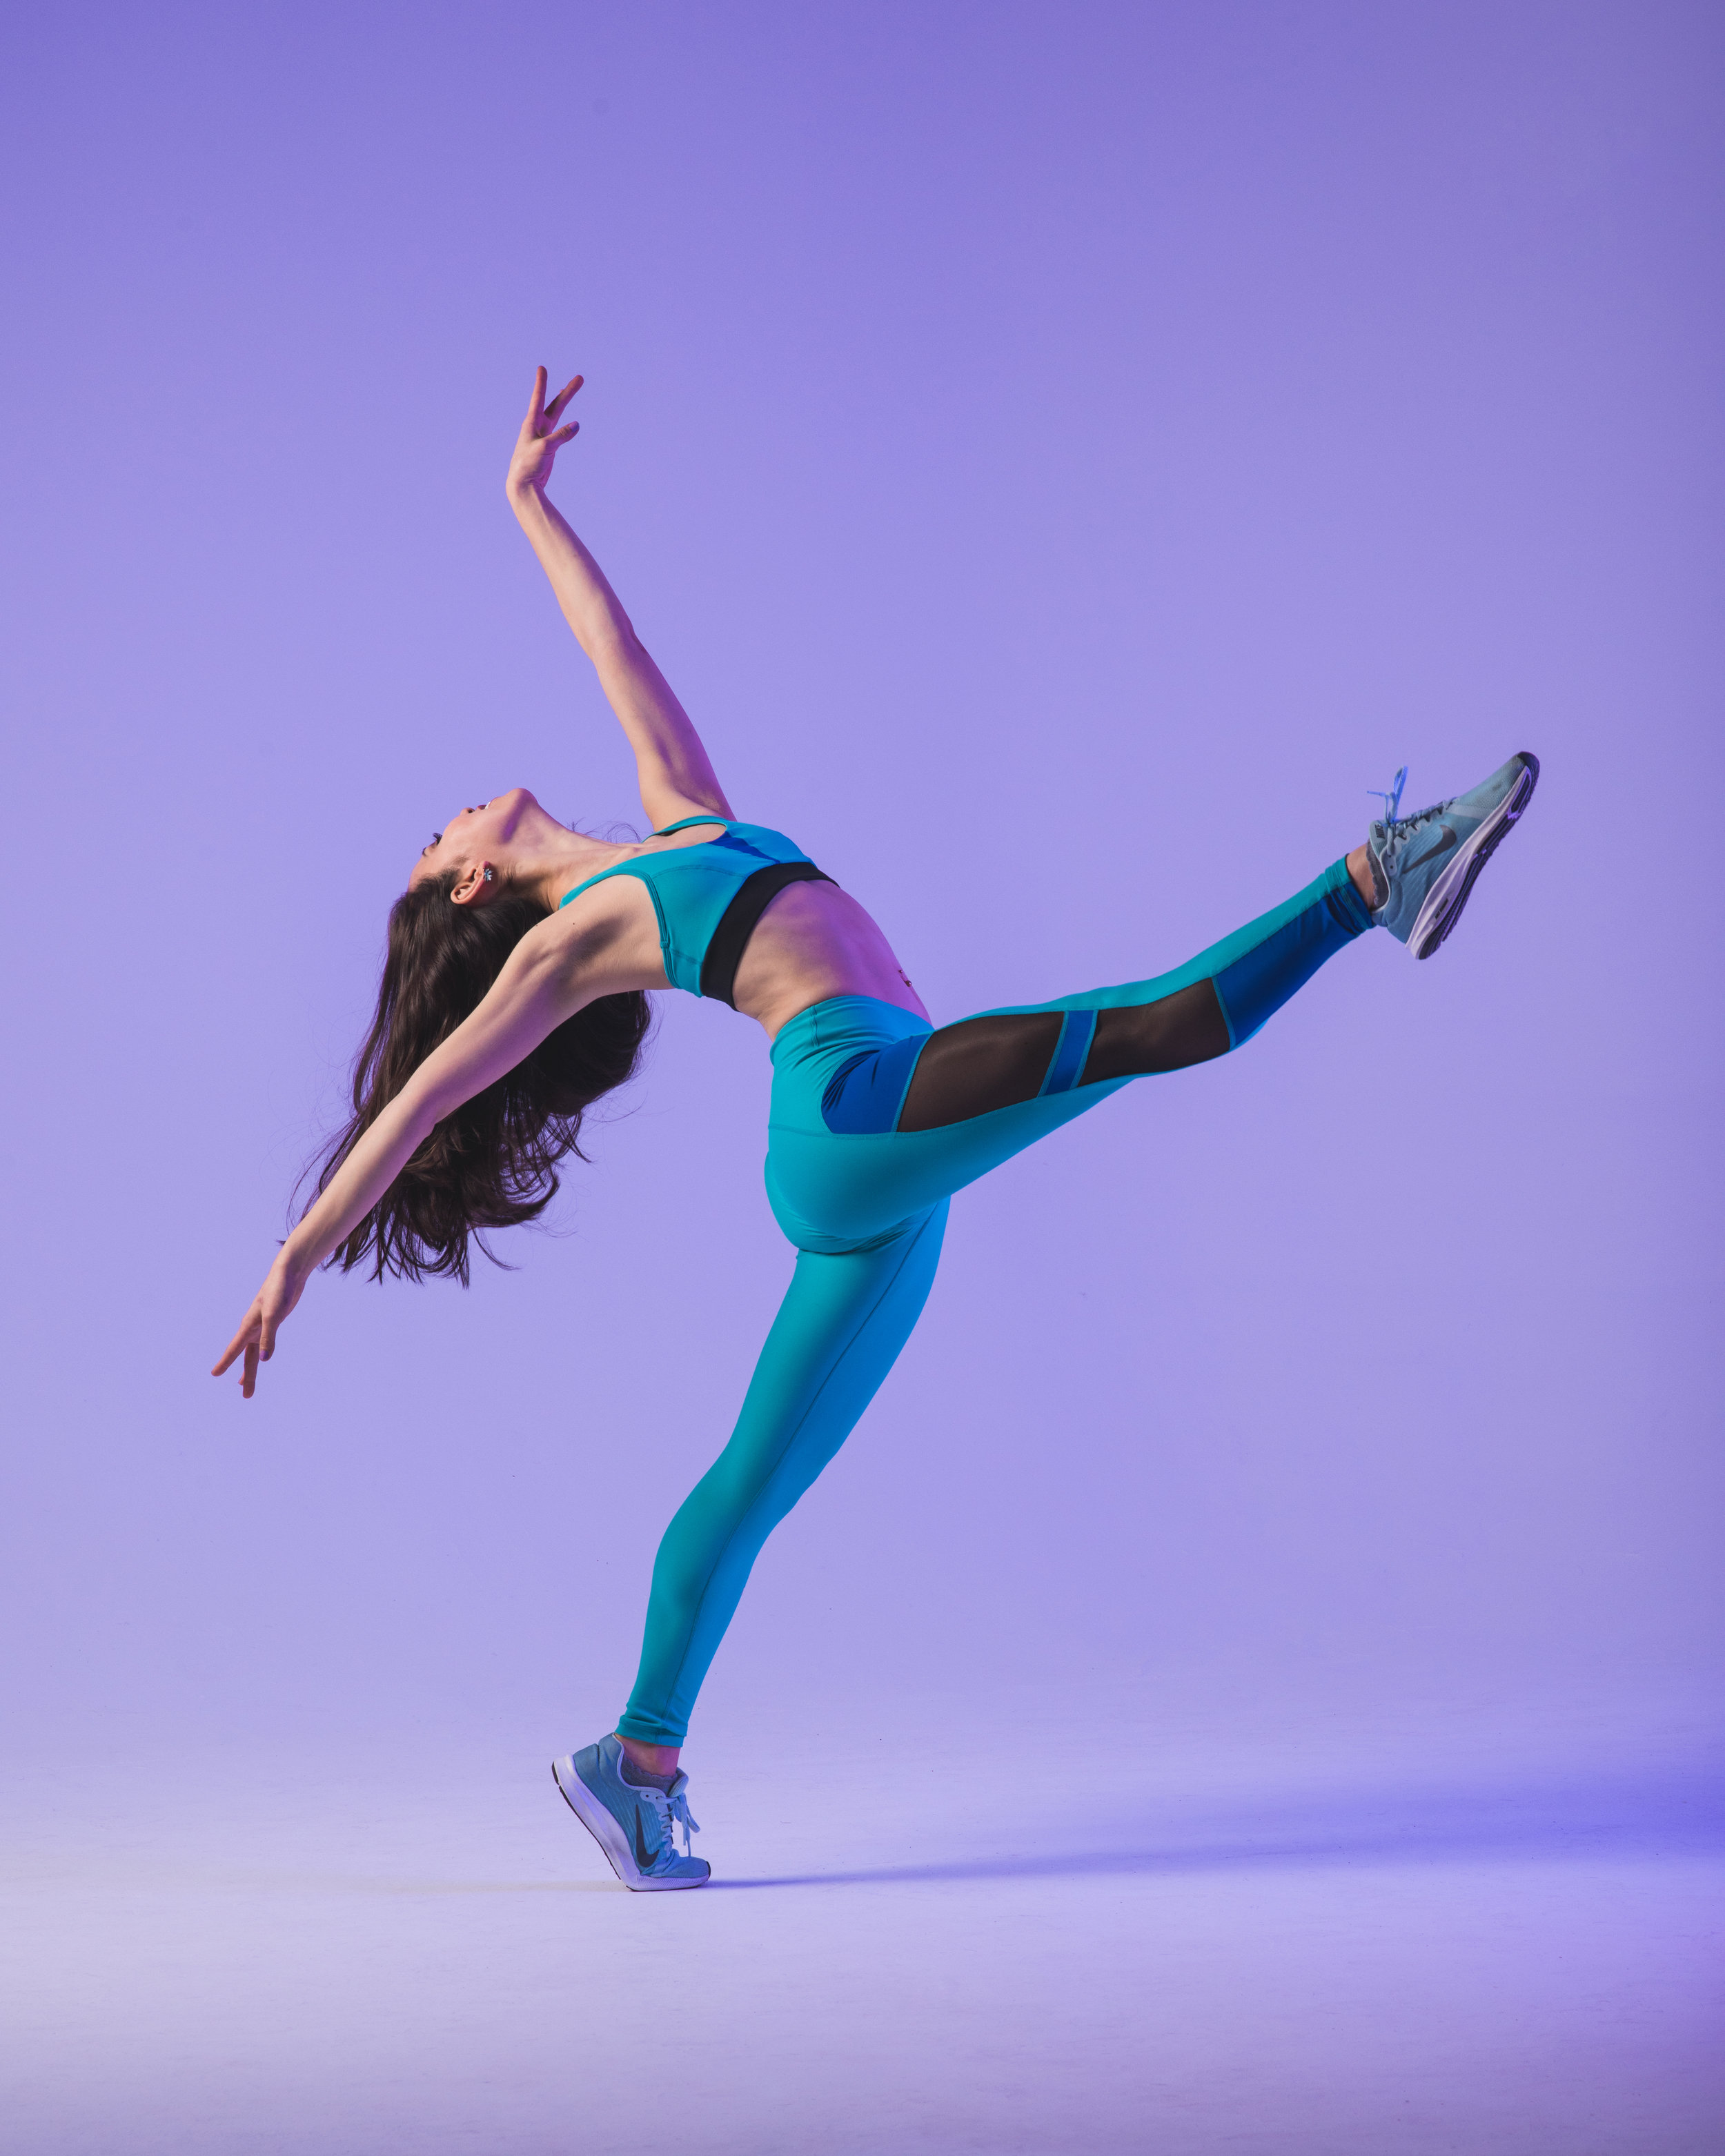 A Workout Experience - This is a workout experience. Yoga, strength, cardio, football agility training, gymnastics inspired strength...and more. Just like Nashville Ballet Star Lily Saito.